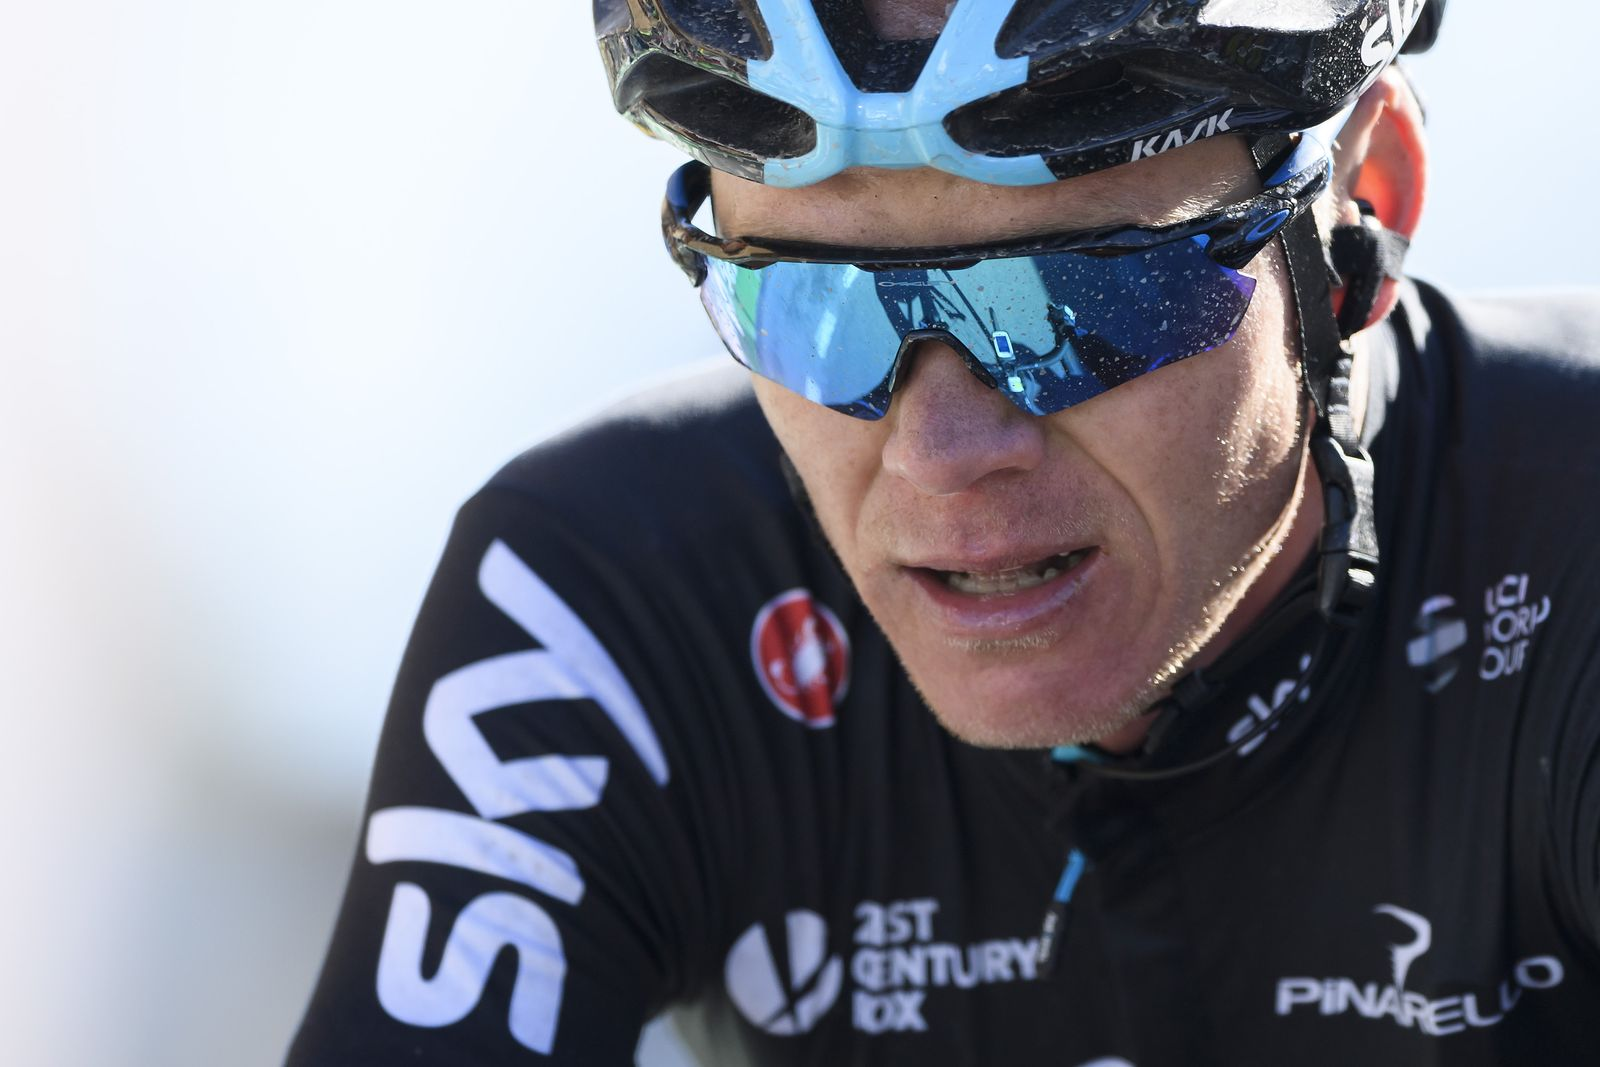 FILES-GBR-FRA-TOUR-FROOME